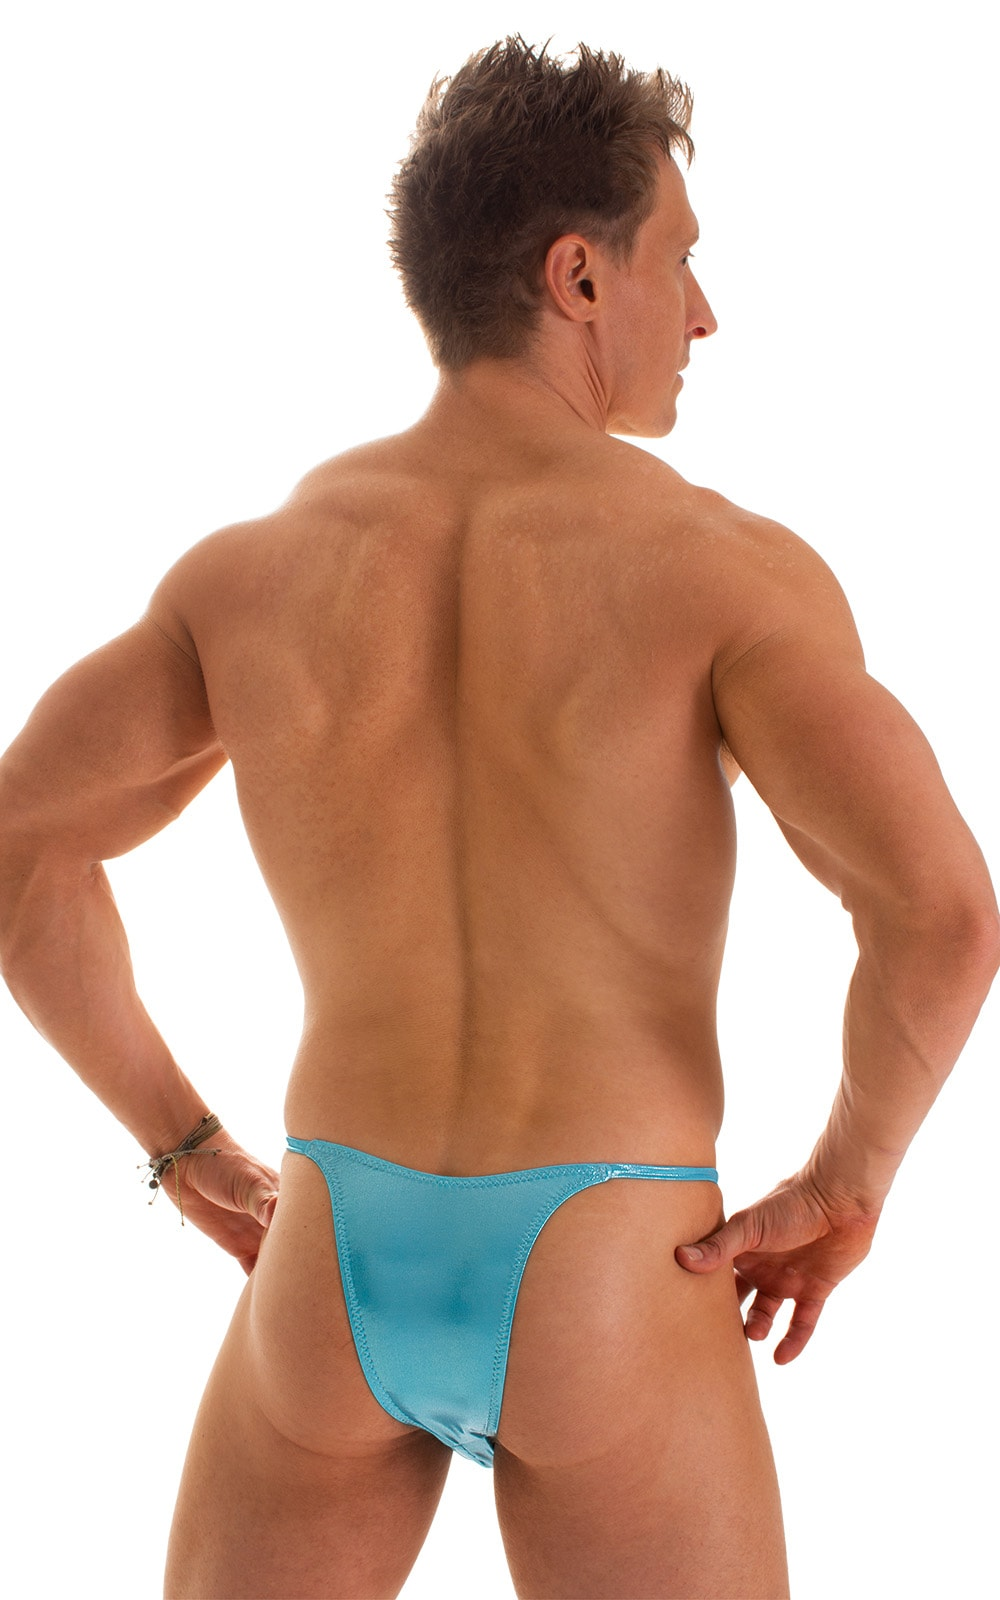 Sunseeker2 Tanning Swimsuit in Ice Karma Turquoise Shimmer 2